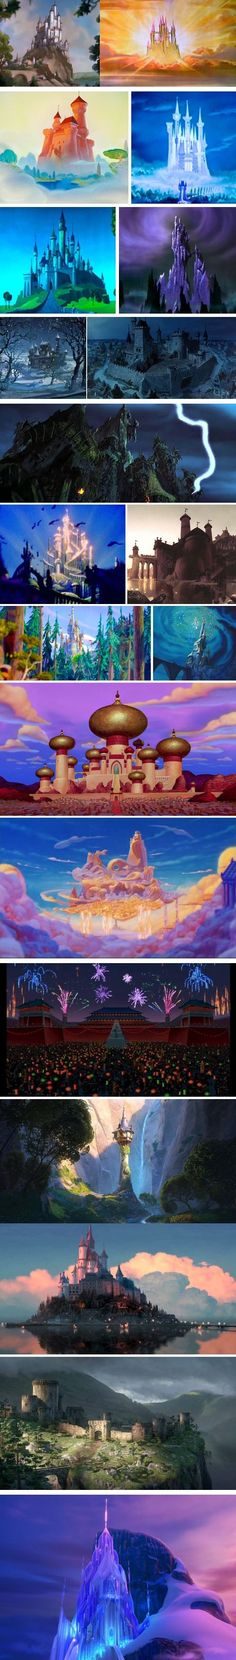 different disney castles